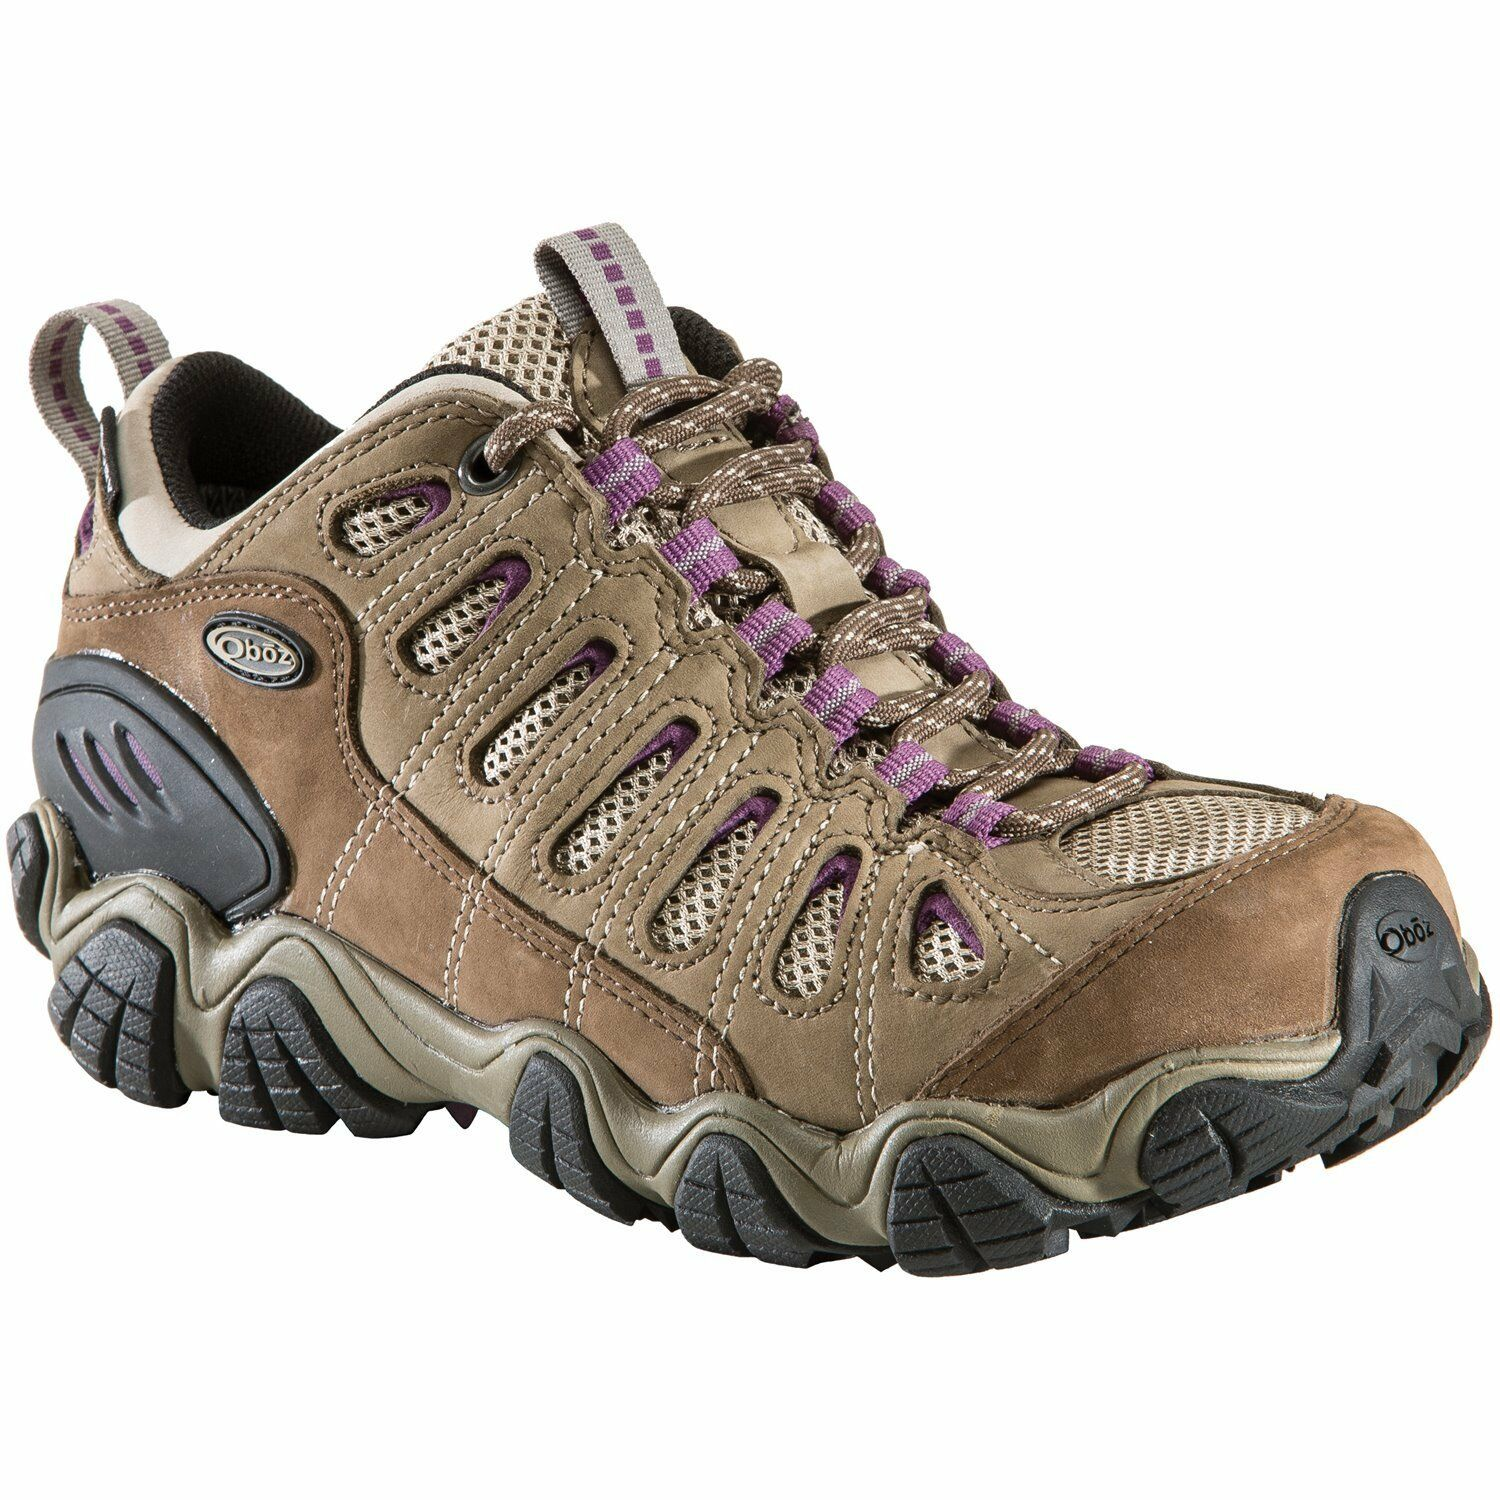 New Oboz Donna Sawtooth Athletic Hiking Trail Athletic Shoes Left 6.5 Right 7